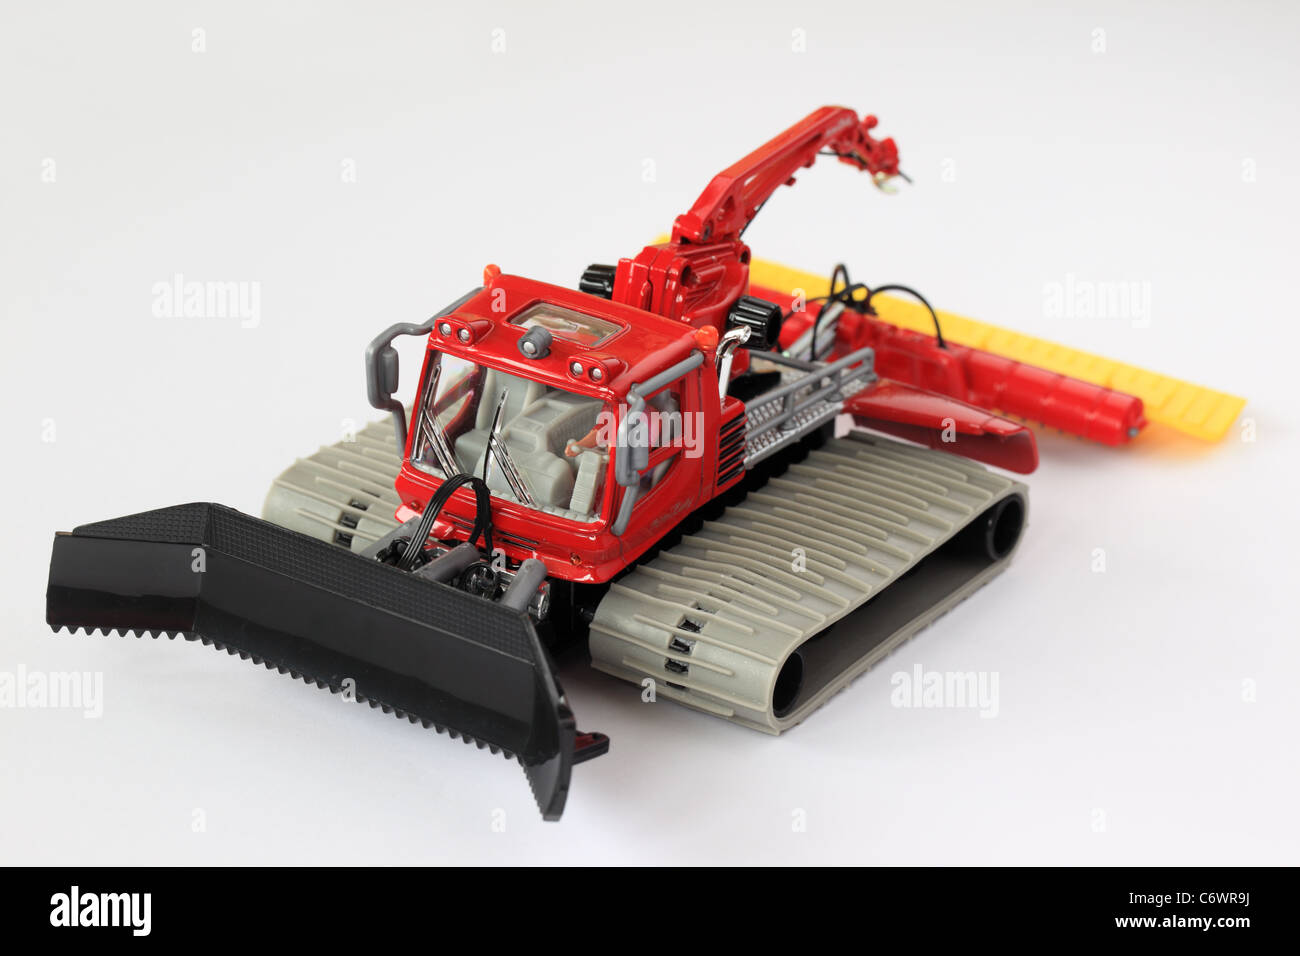 Toy Piste Basher model against a white background - Stock Image